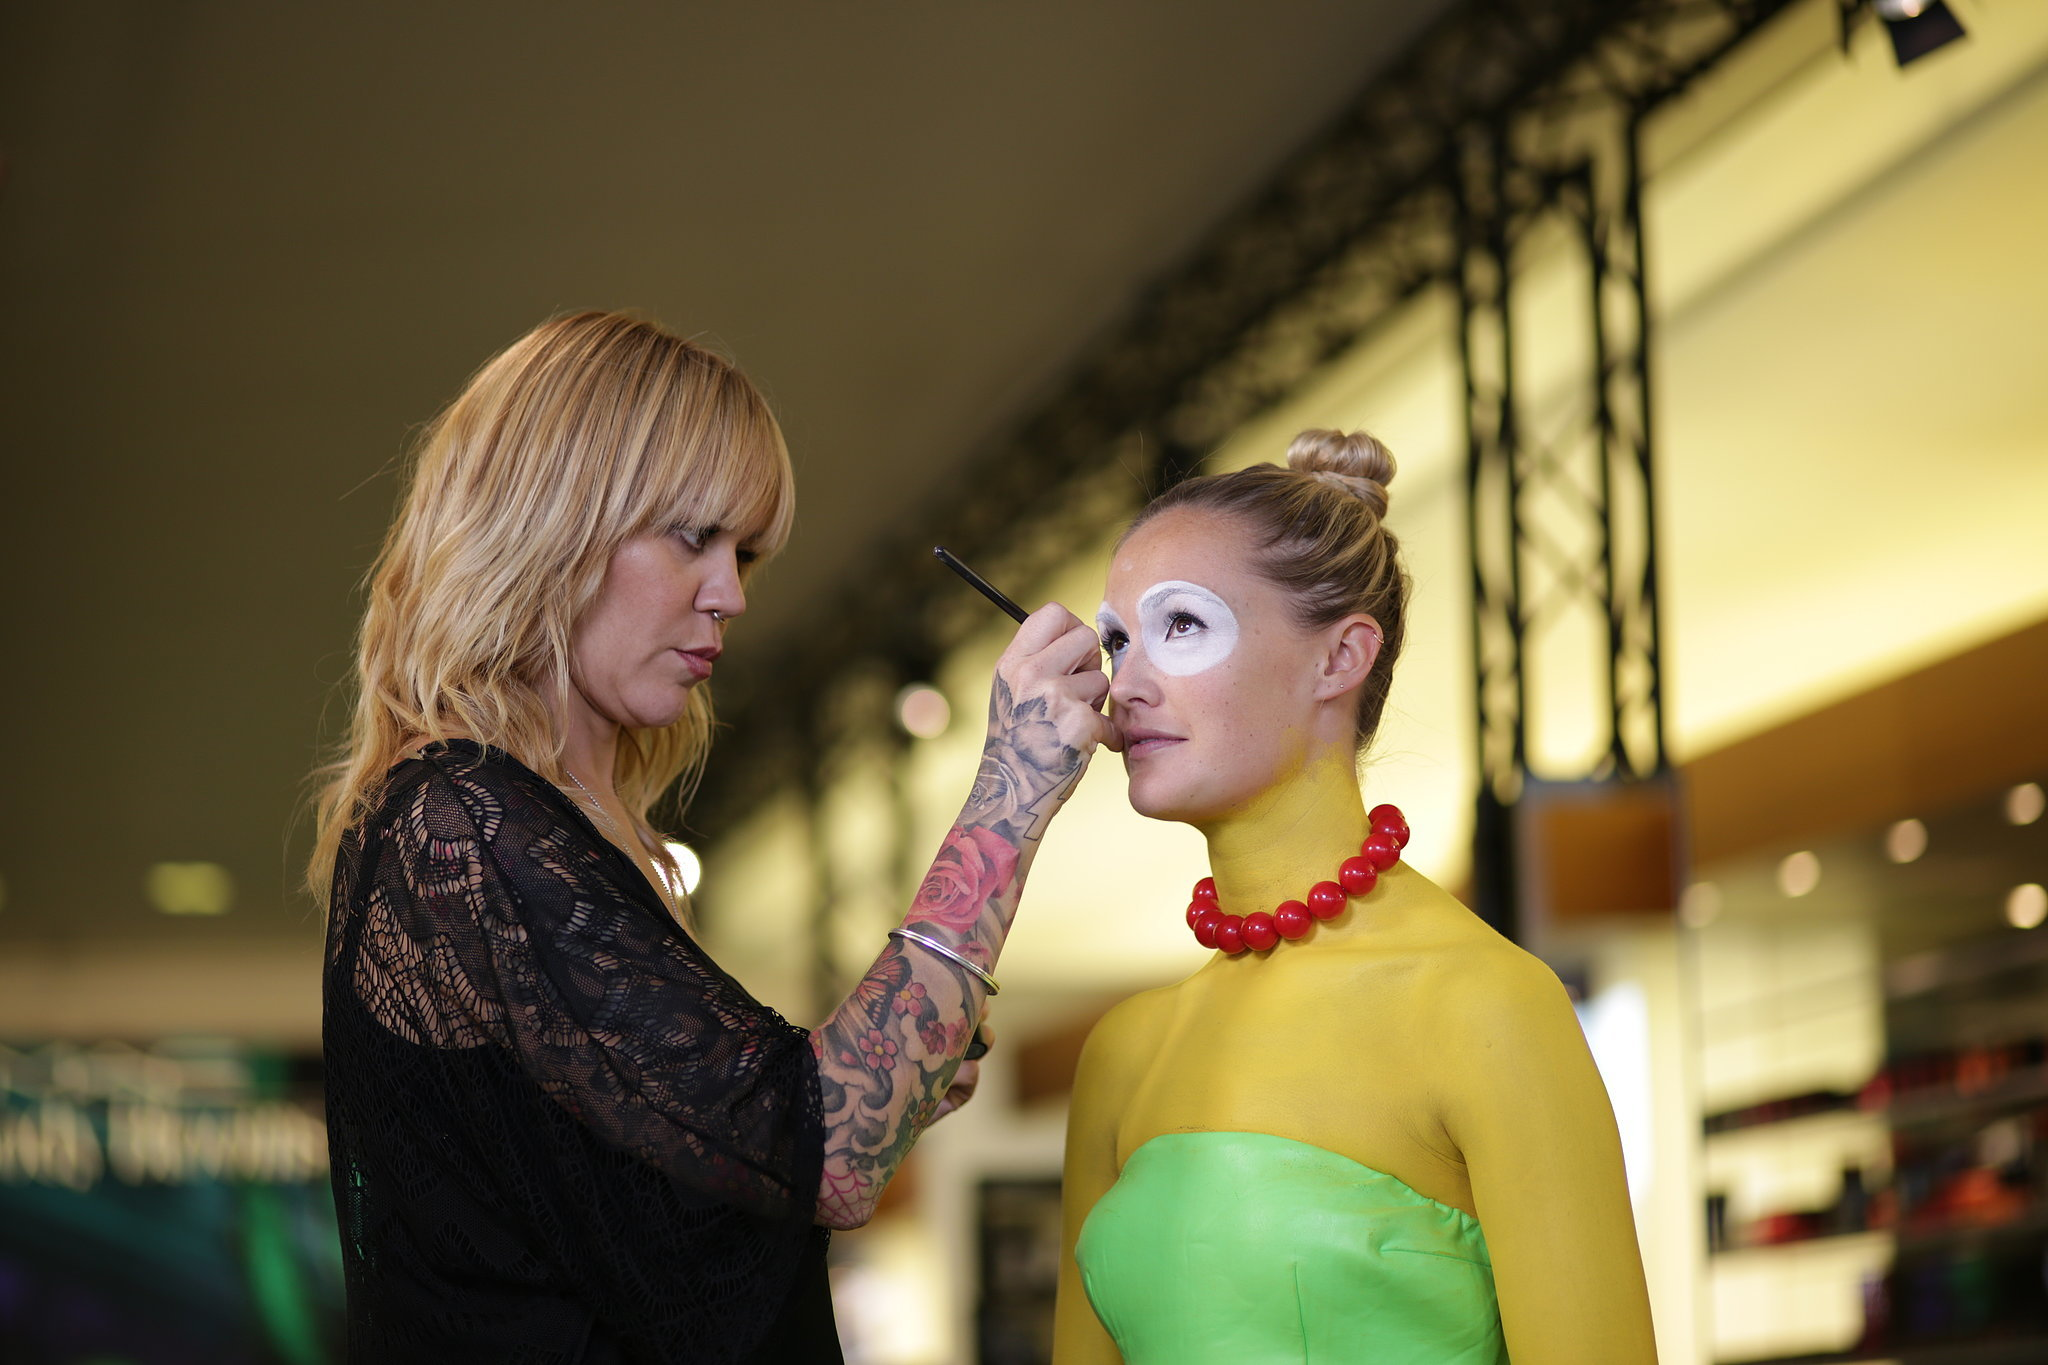 Caroline Donnelly applies water-based paint to her model